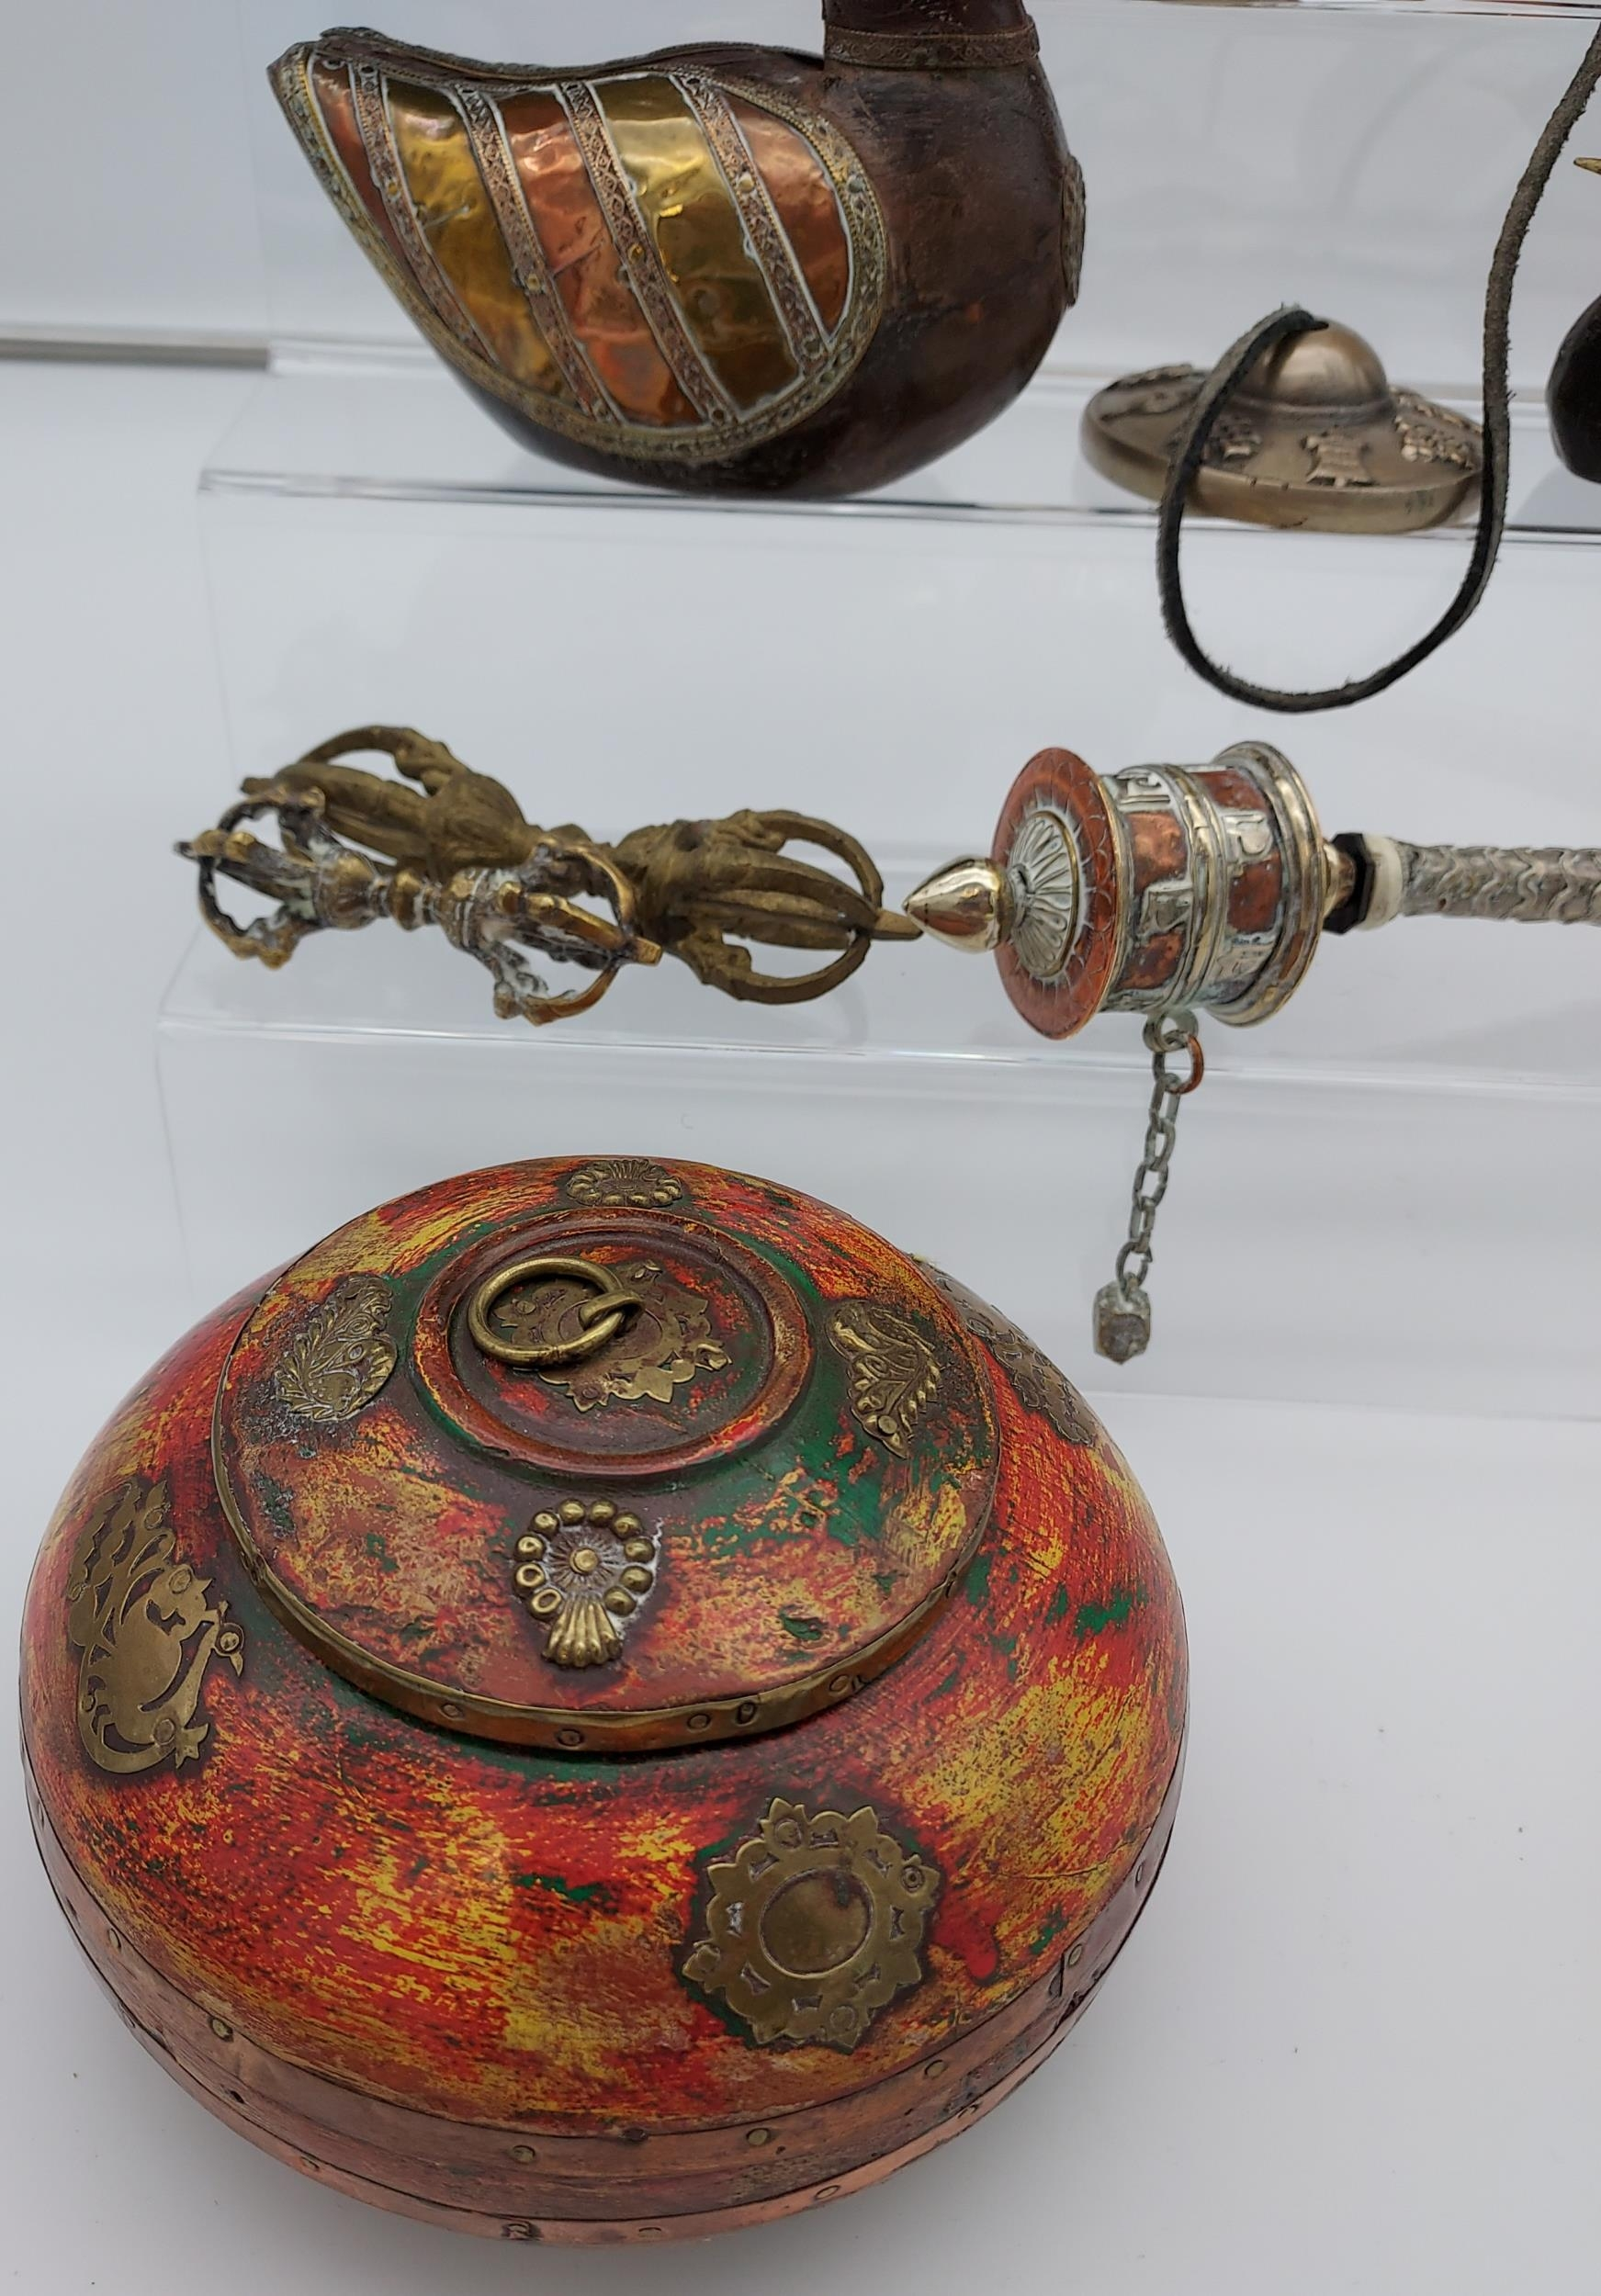 A collection of Tibetan antiques to include silver and copper teapot, prayer wheel, meditation chime - Image 5 of 6